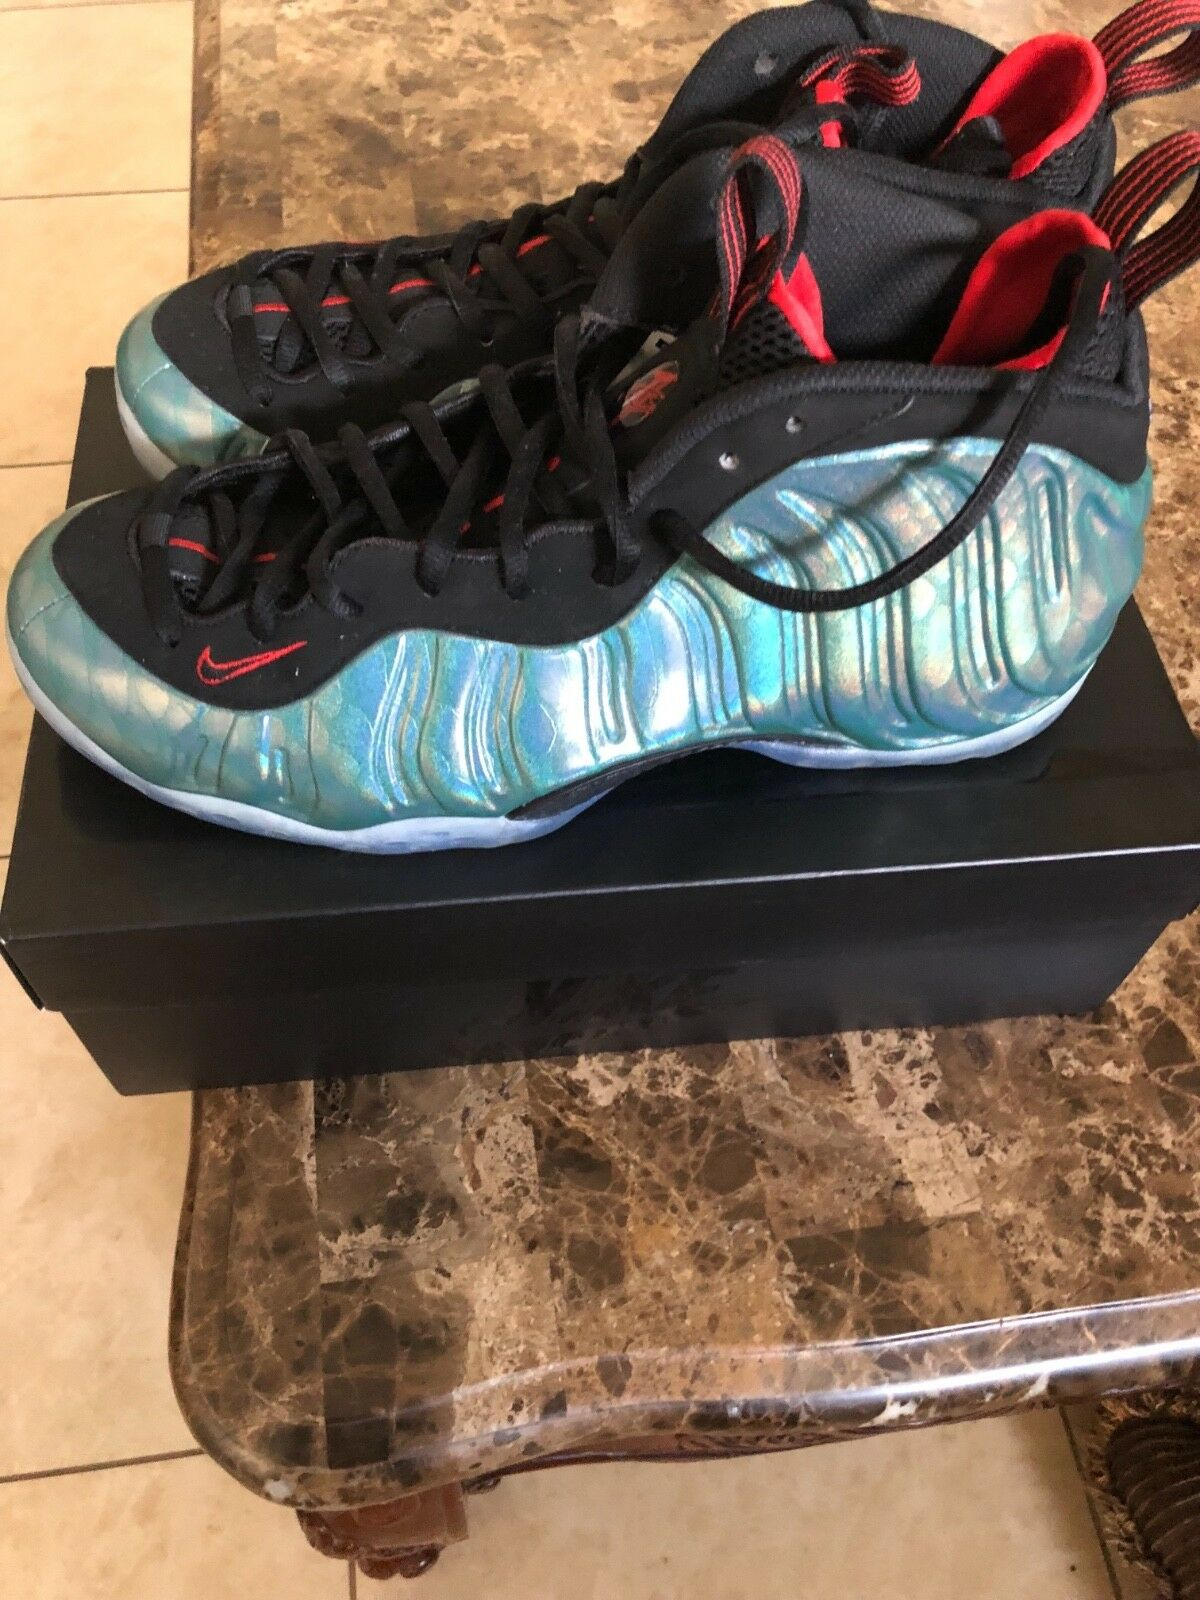 Nike Air Foamposite y one gone fishing 13 comodo y Foamposite atractivo 8d7cc1